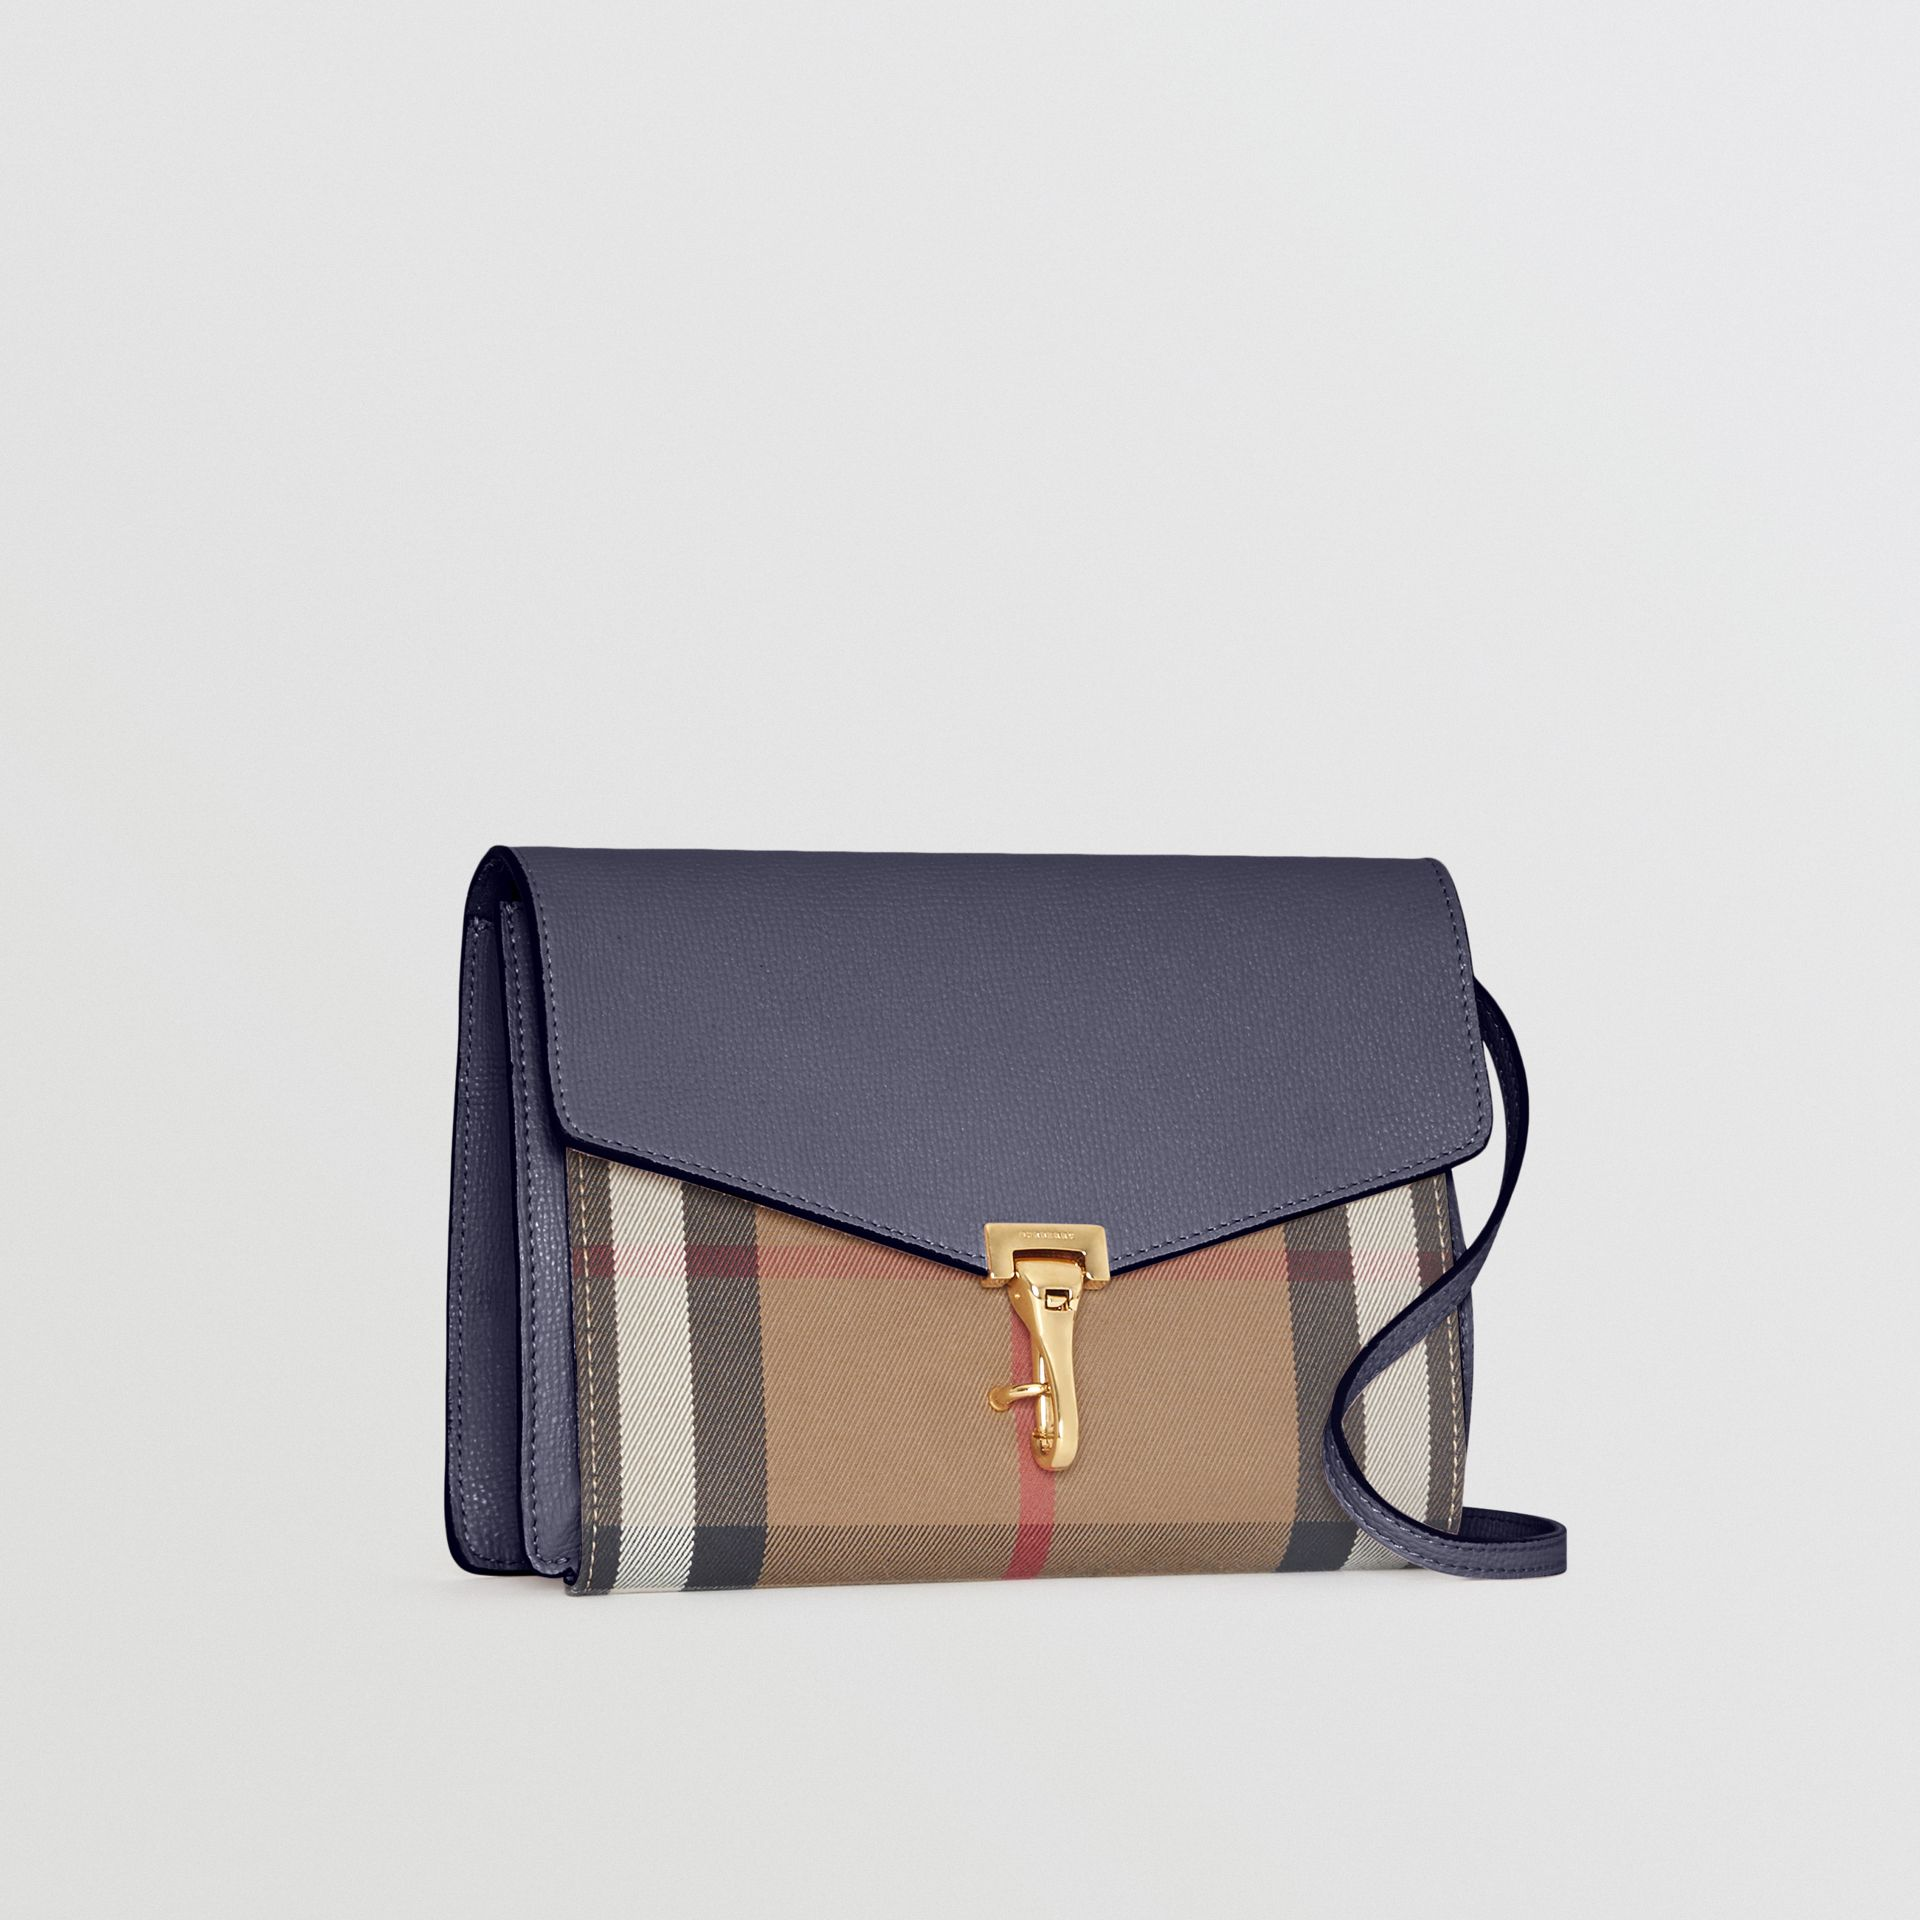 Small Leather and House Check Crossbody Bag in Ink Blue - Women | Burberry Singapore - gallery image 6